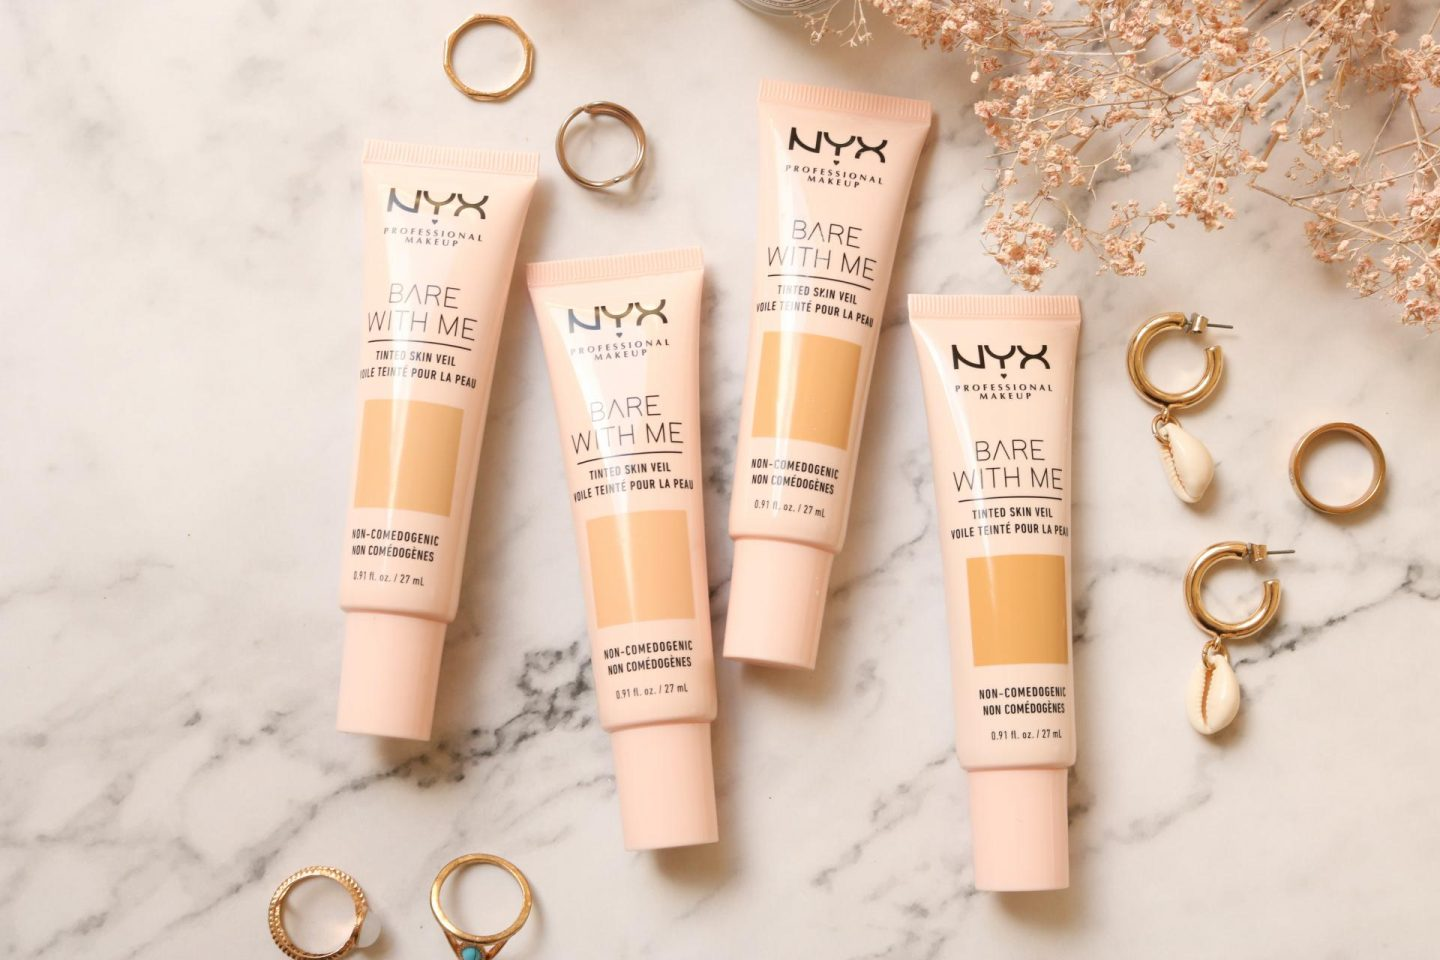 Bare With Me Tinted Skin Veil by NYX Cosmetics